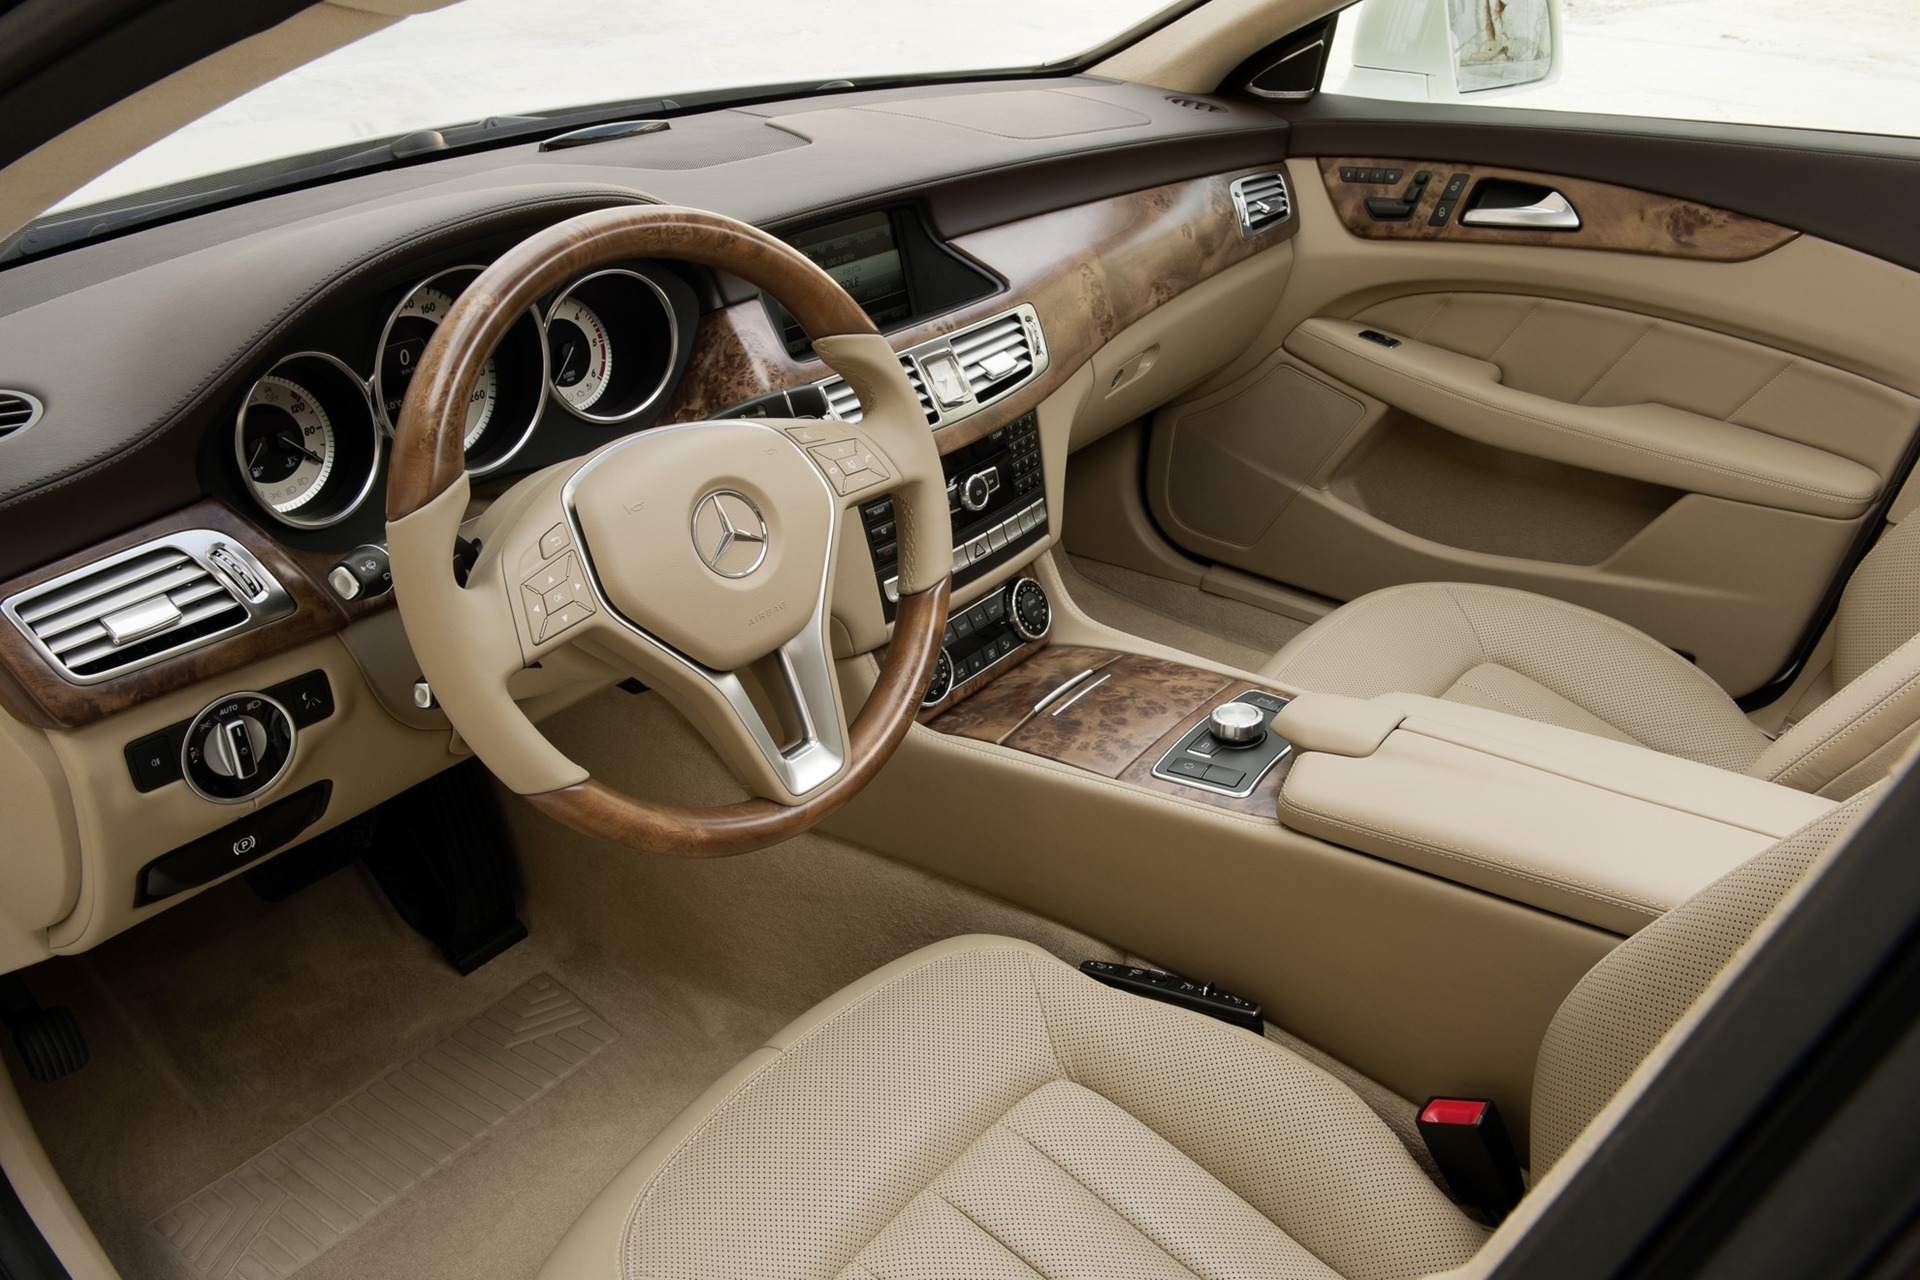 Mercedes Benz Cls Shooting Brake The Interior